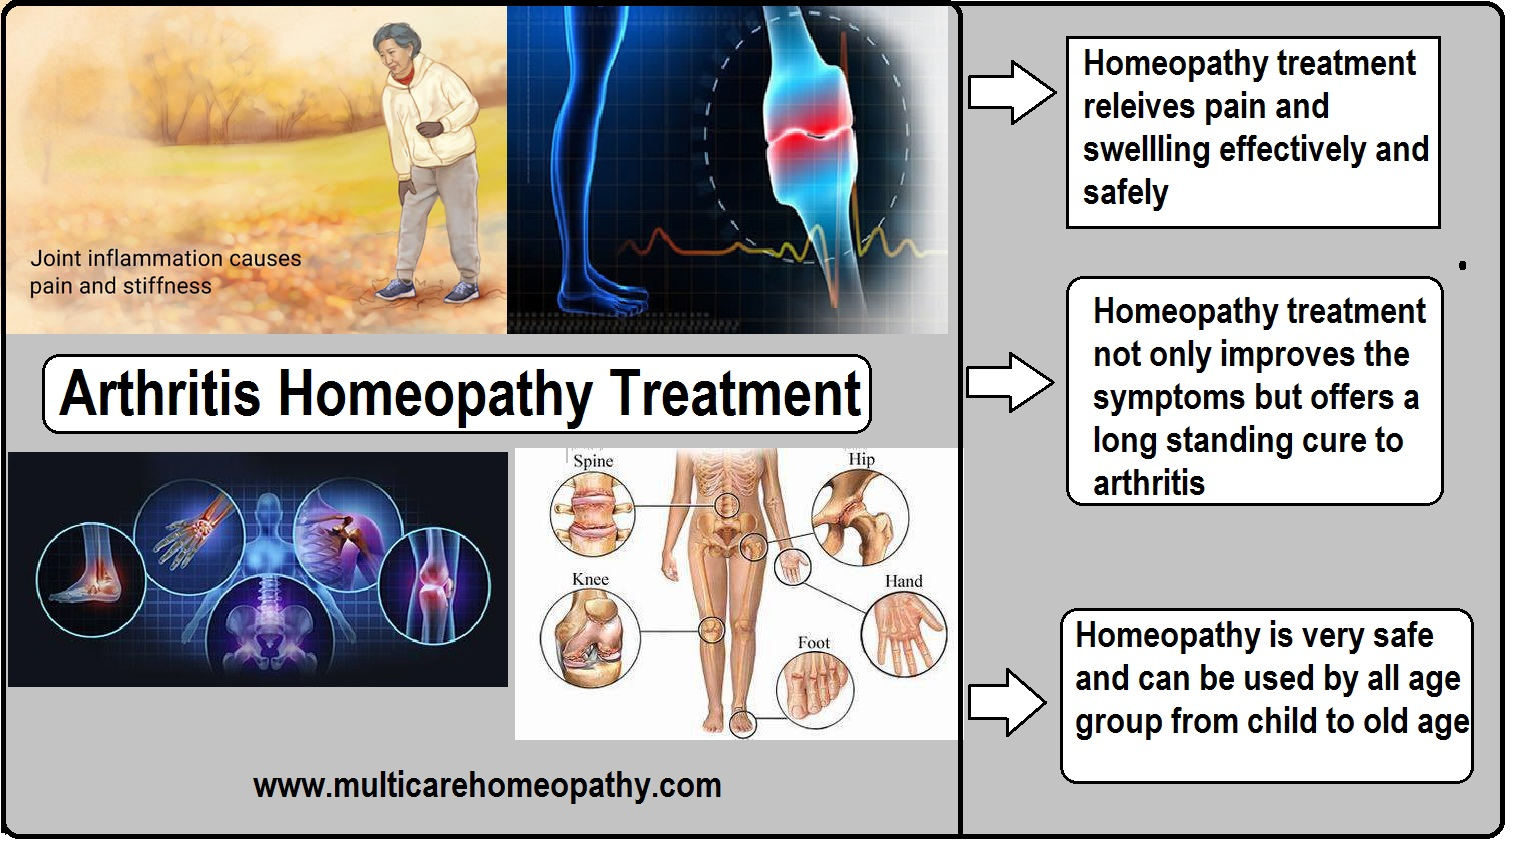 6 best homeopathic medicines for arthritis joints pain rheumatism